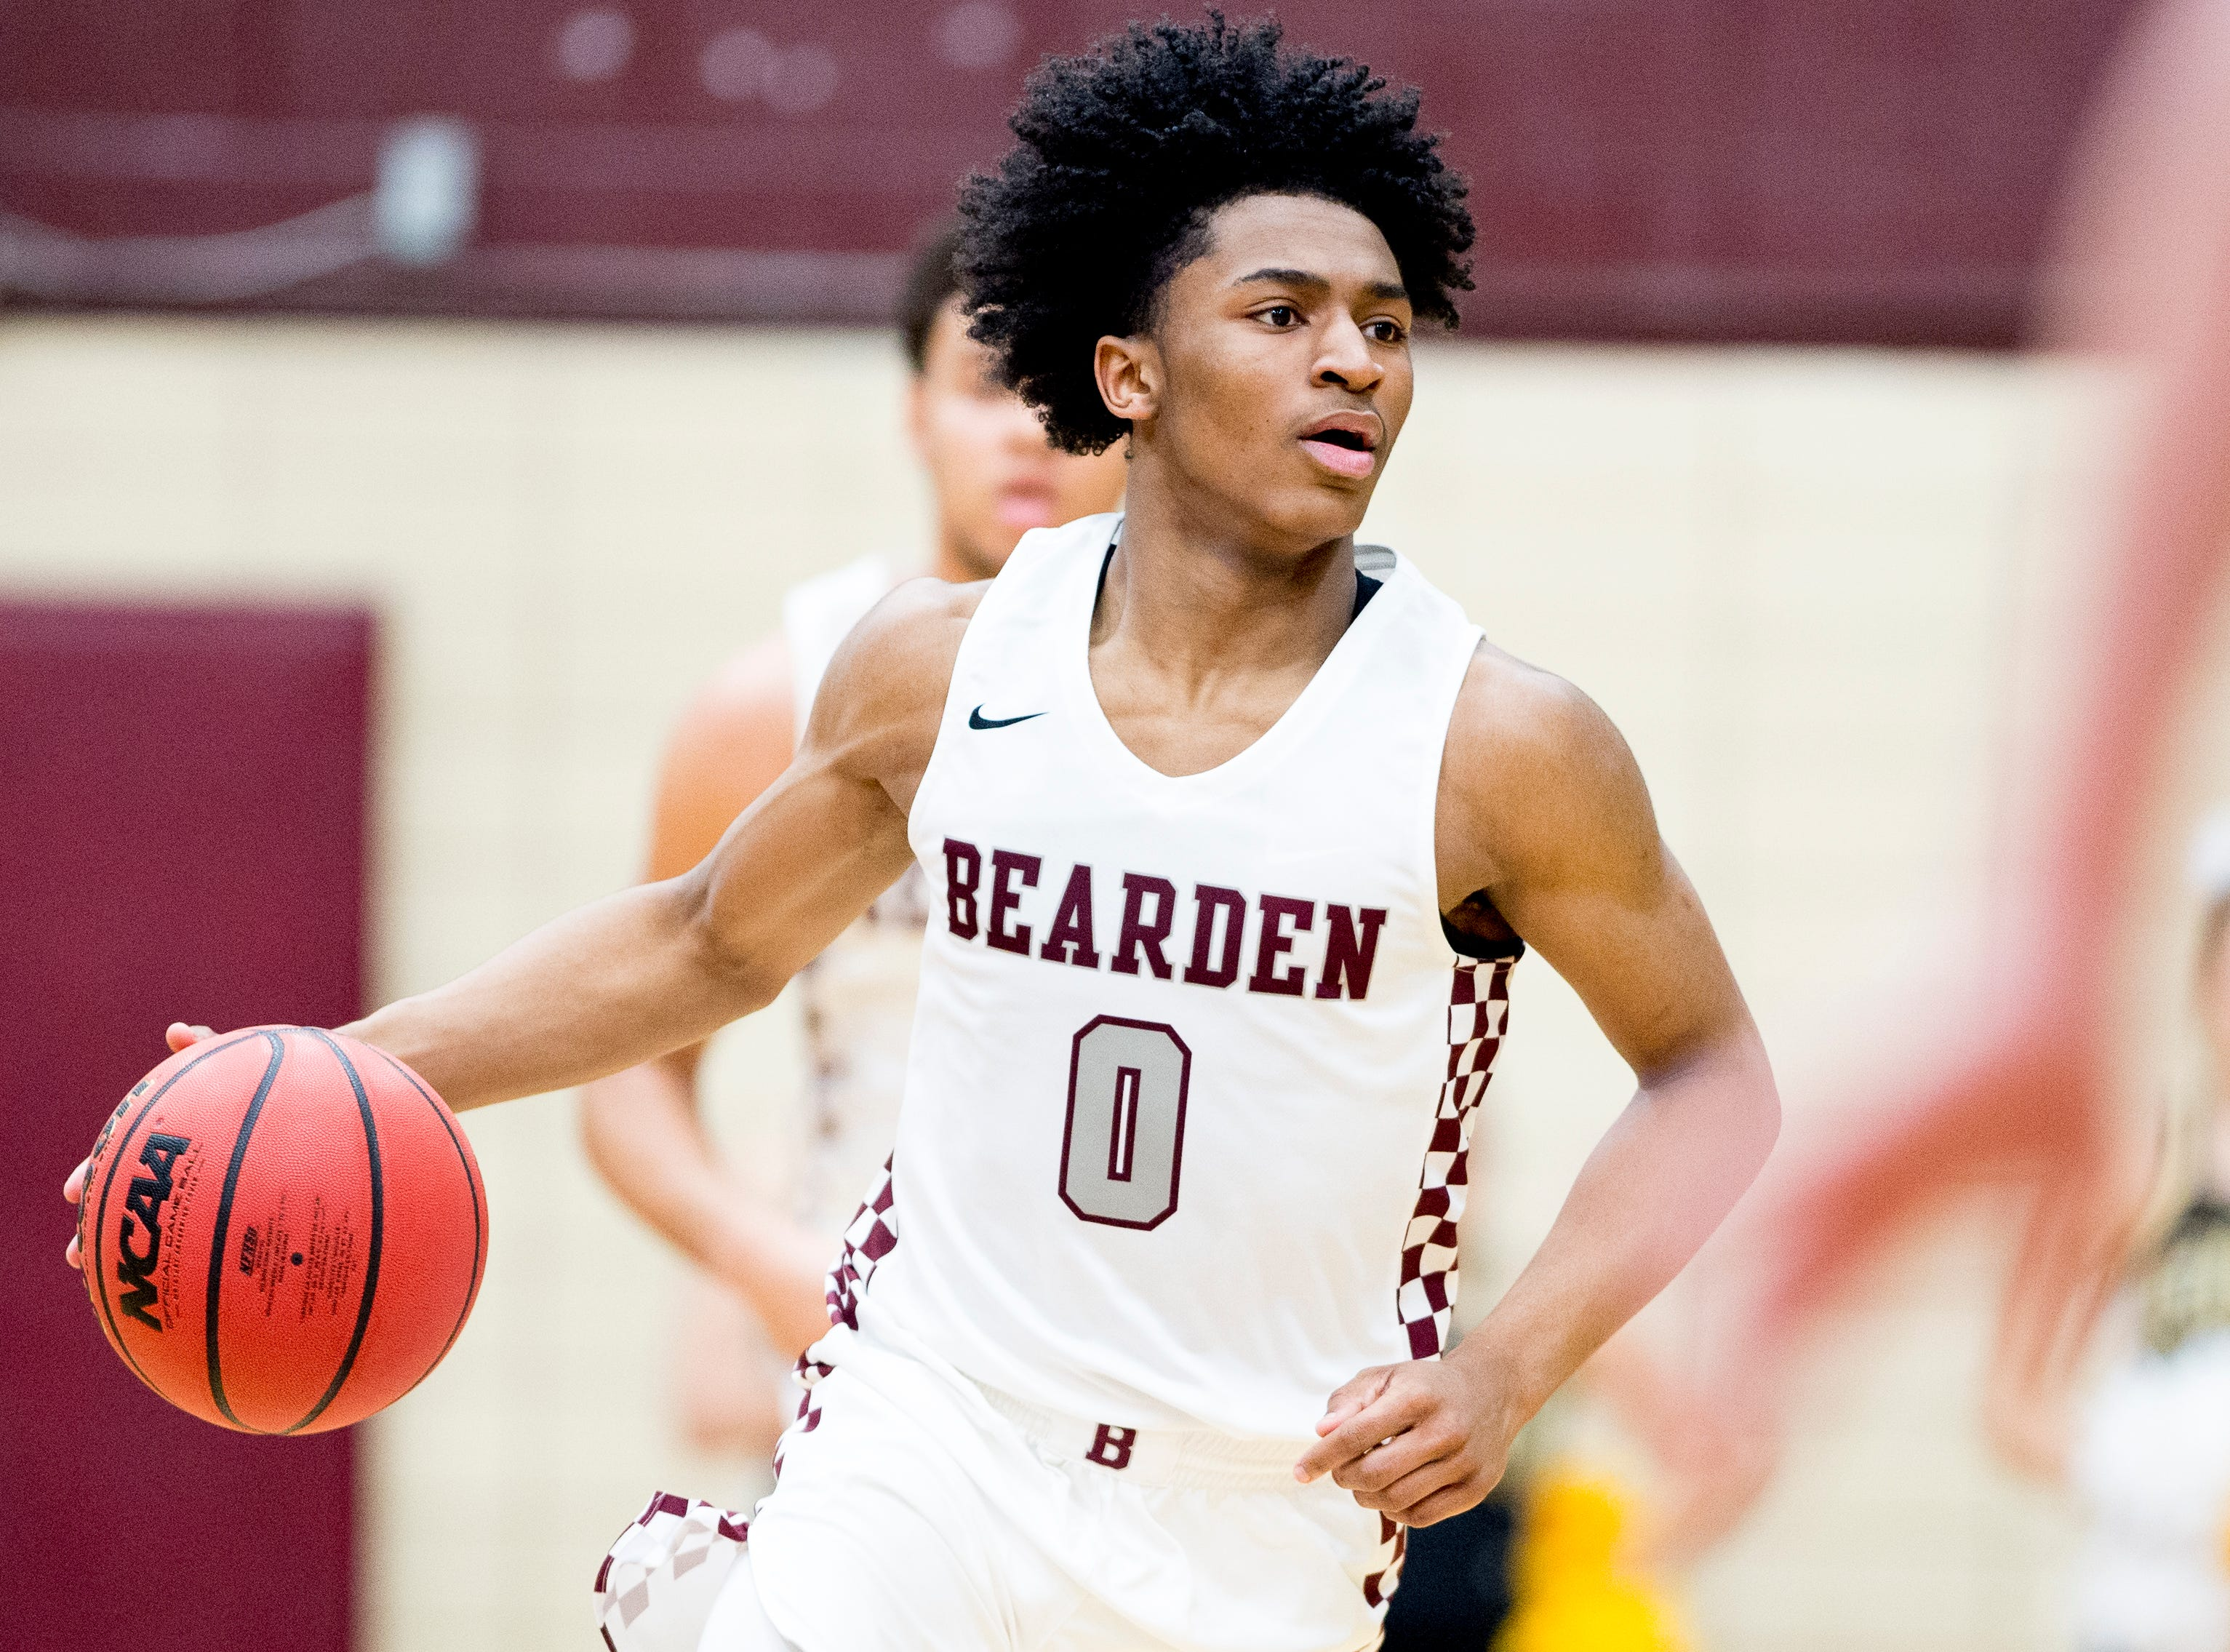 Bearden's Ques Glover (0) dribbles down the court during a game between Bearden and Catholic at Bearden High School in Knoxville, Tennessee on Thursday, January 10, 2019.